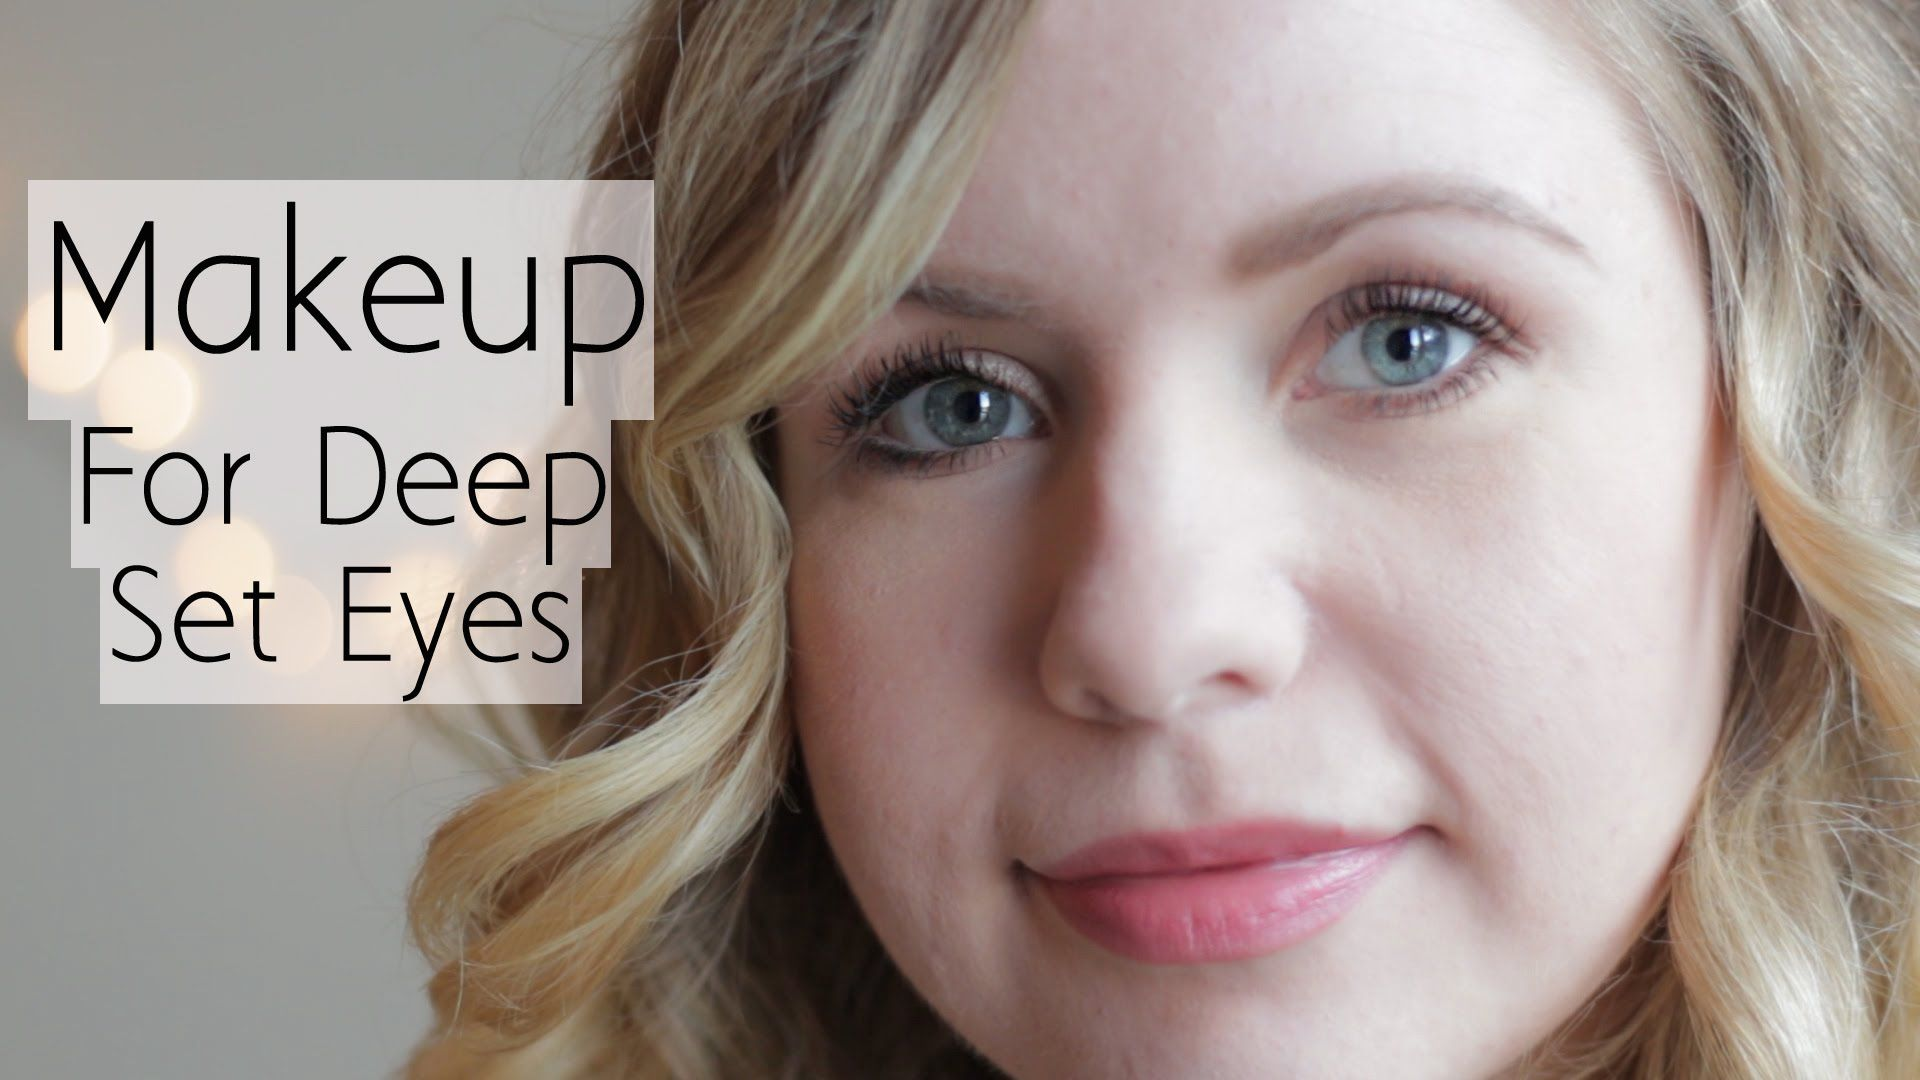 How to even out your eyelids without surgery youtube - How To Apply Makeup For Deep Set Eyes Everyday Natural Look